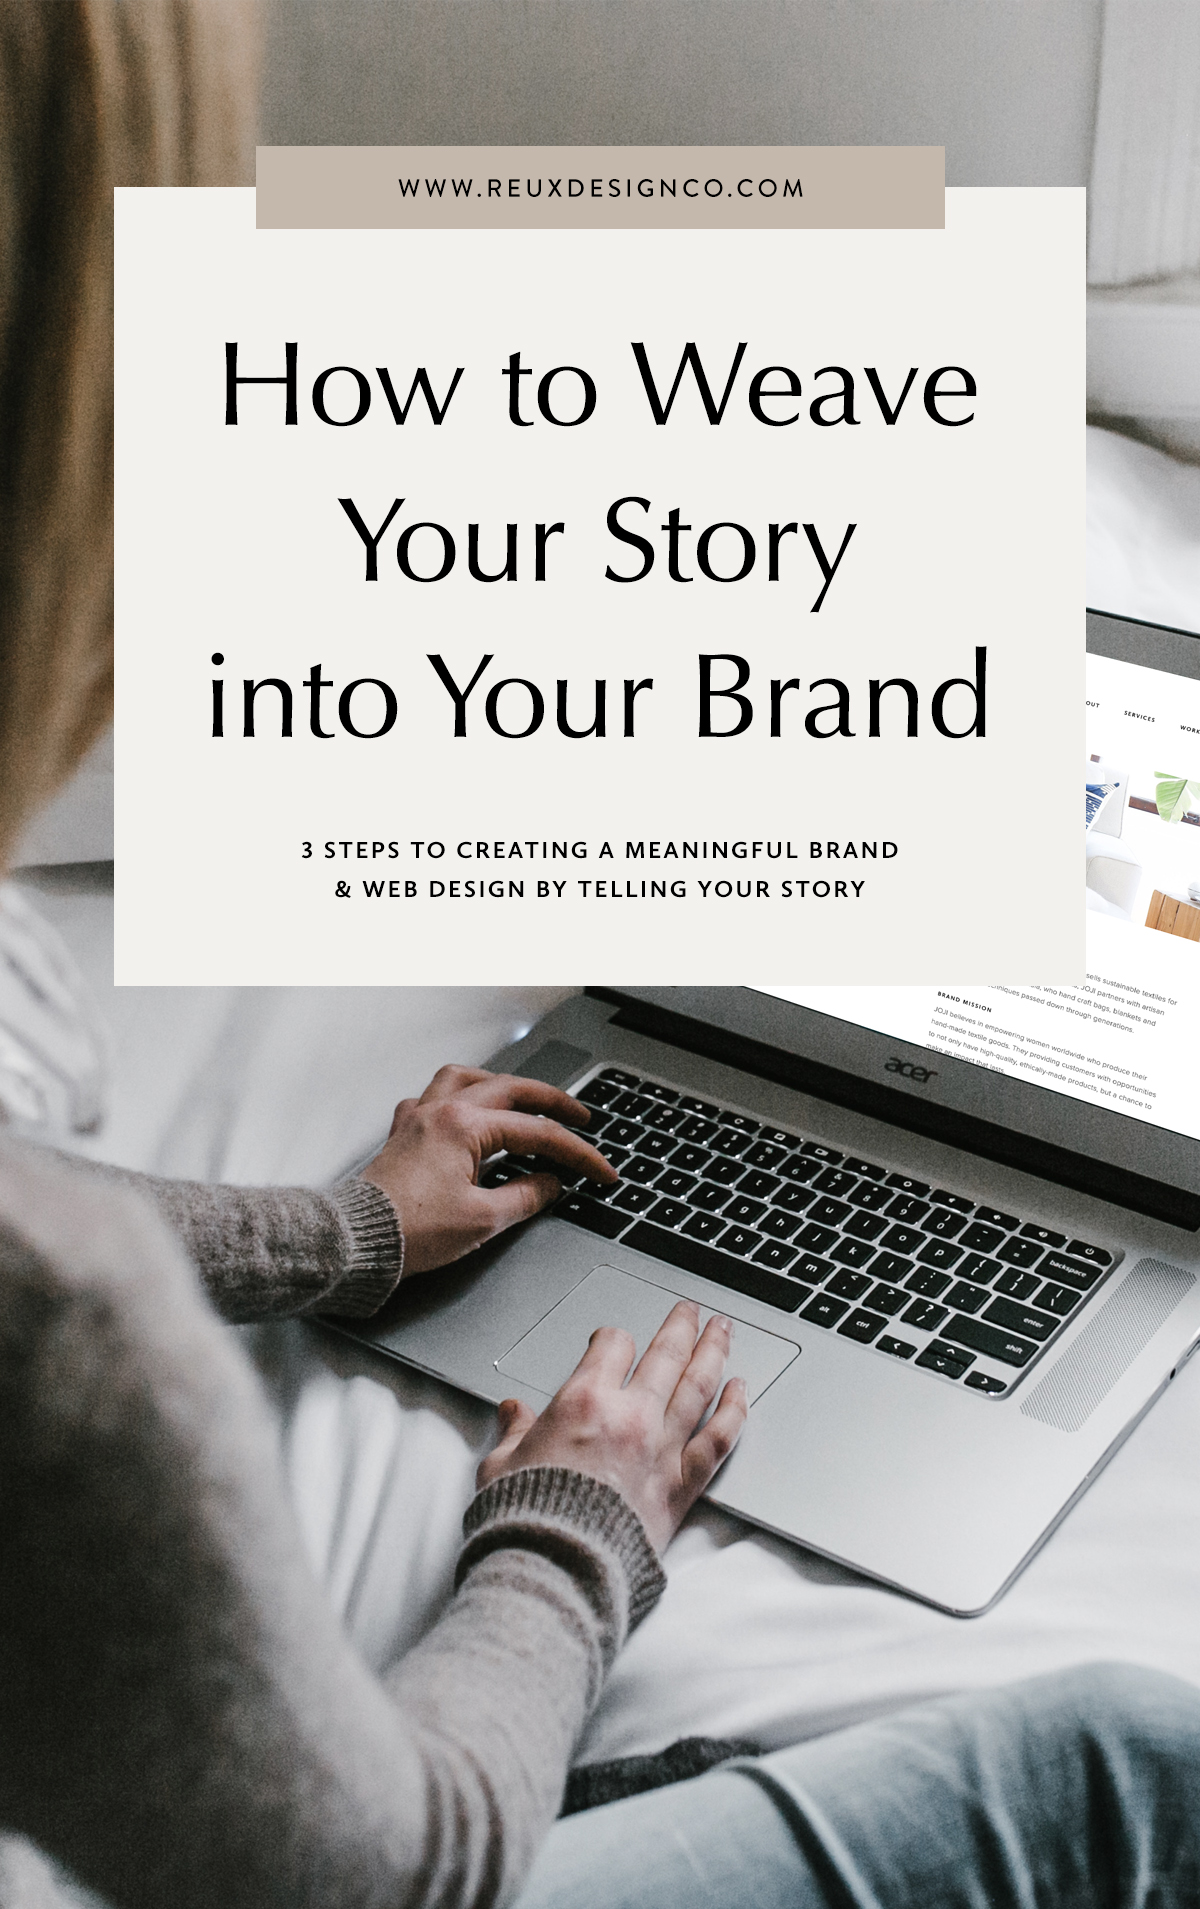 A guide to telling your brand story through design. How to weave your story into your brand in a way that connects with clients.